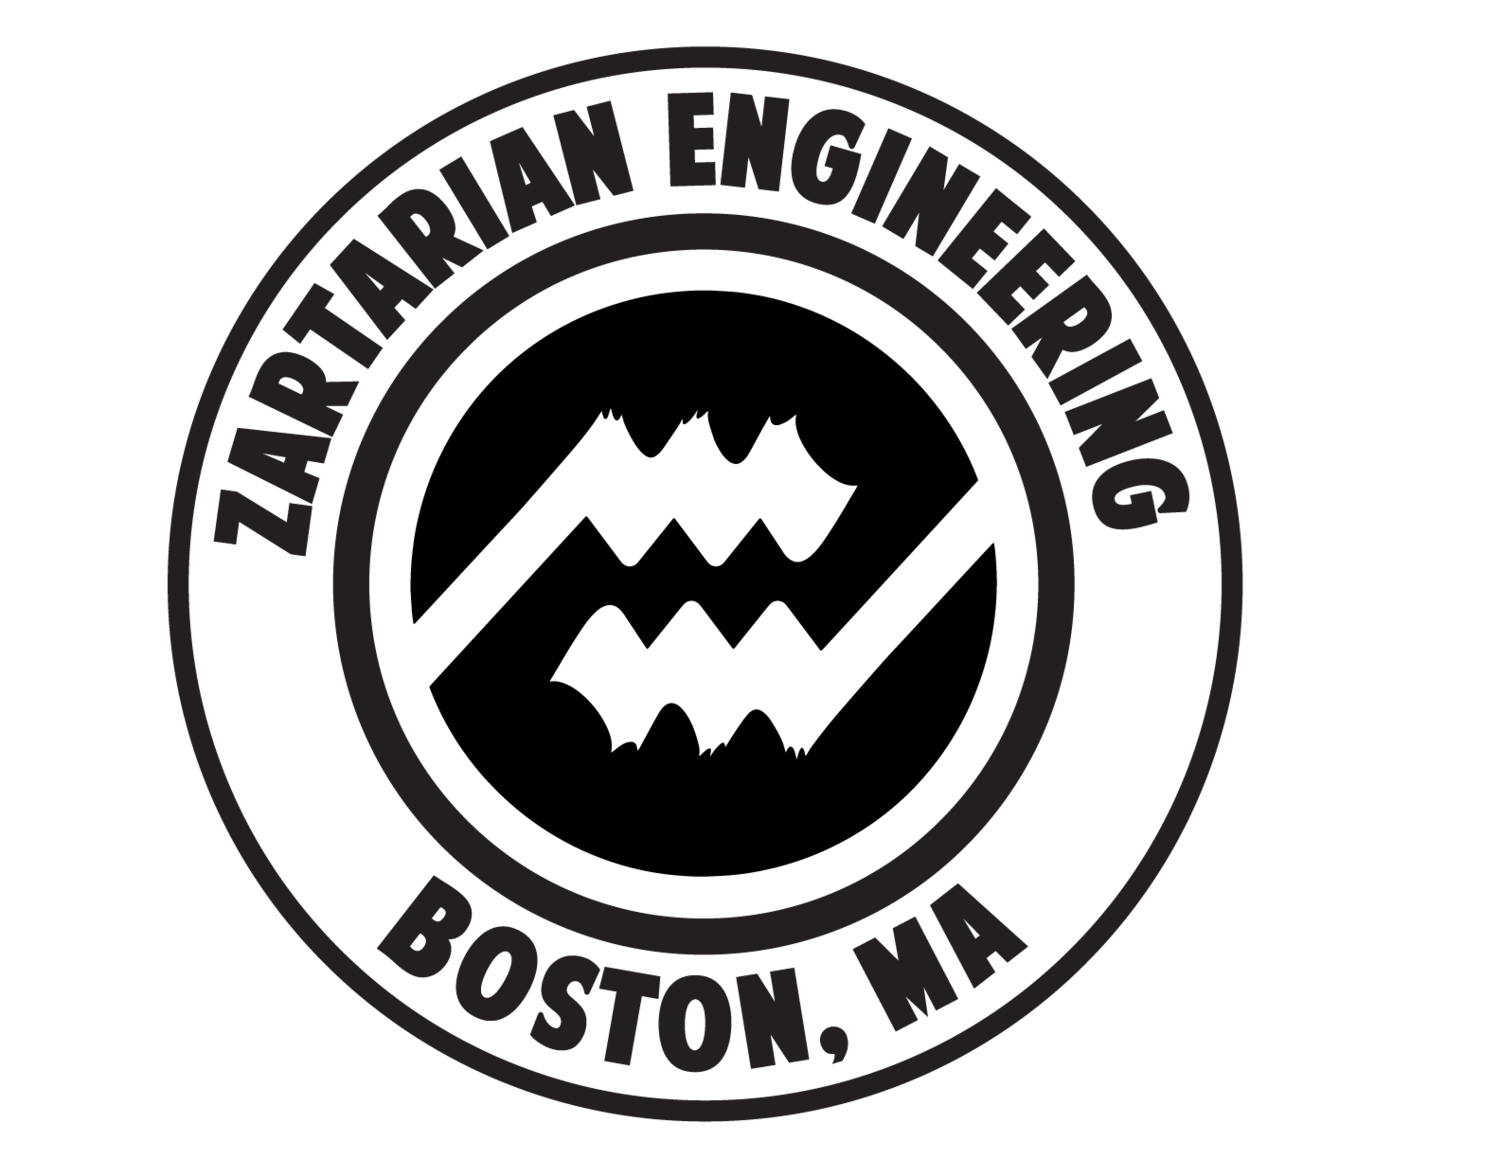 Zartarian Engineering, LLC